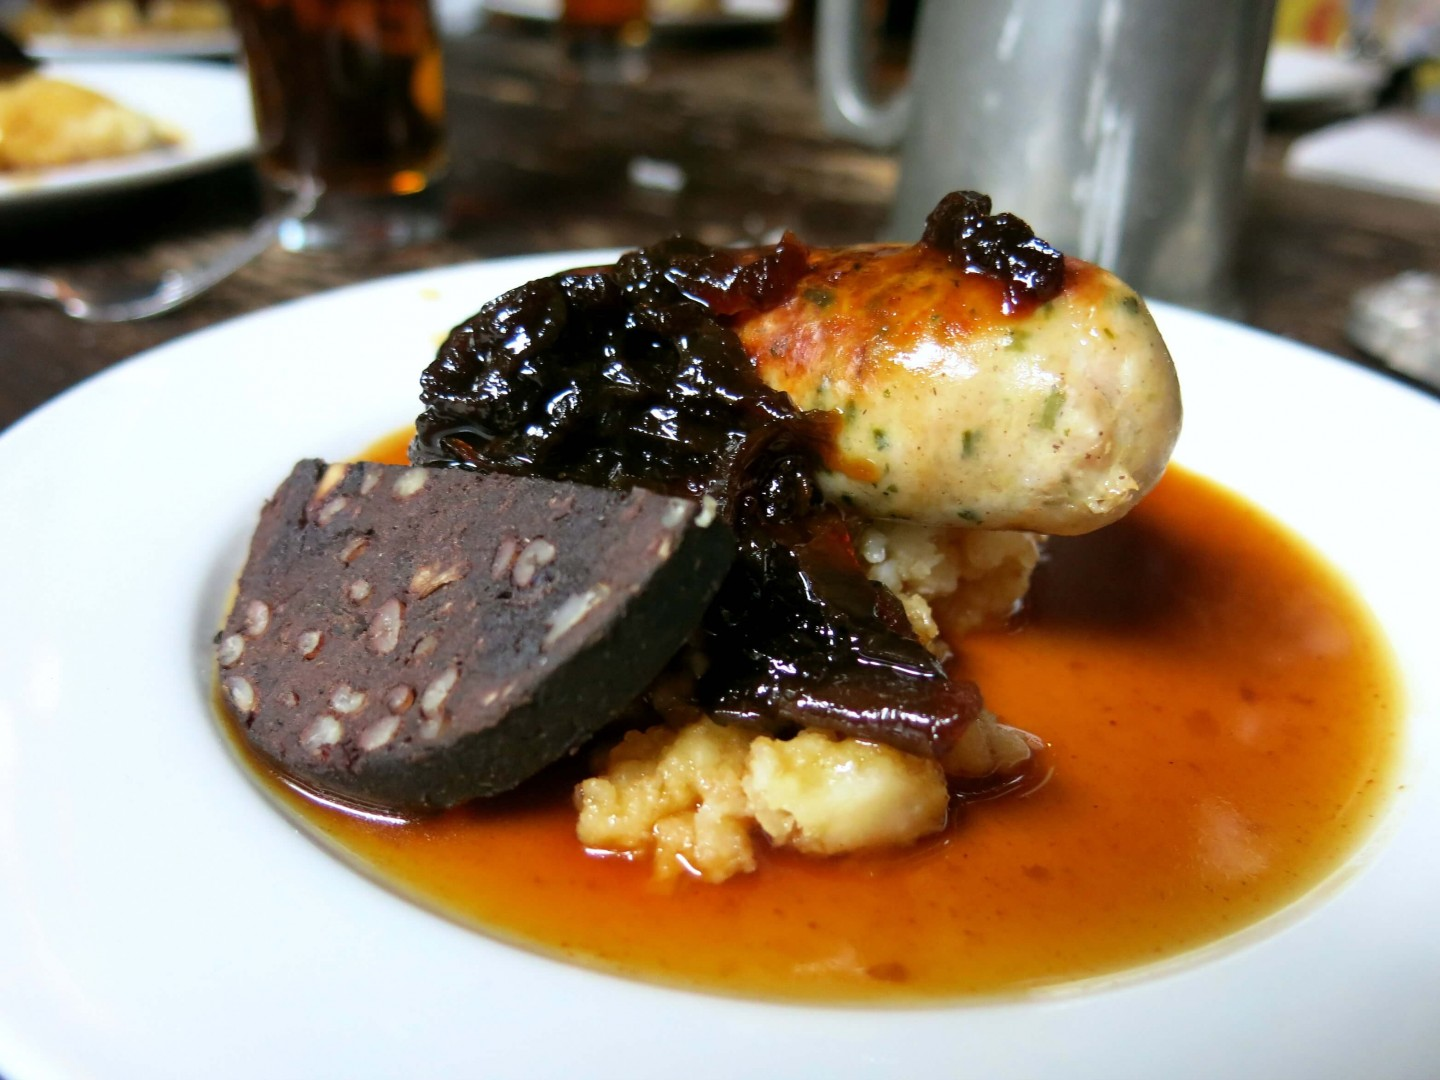 Traditional British 'bangers n mash' is just 1 of the dishes served along this historic London food tour.